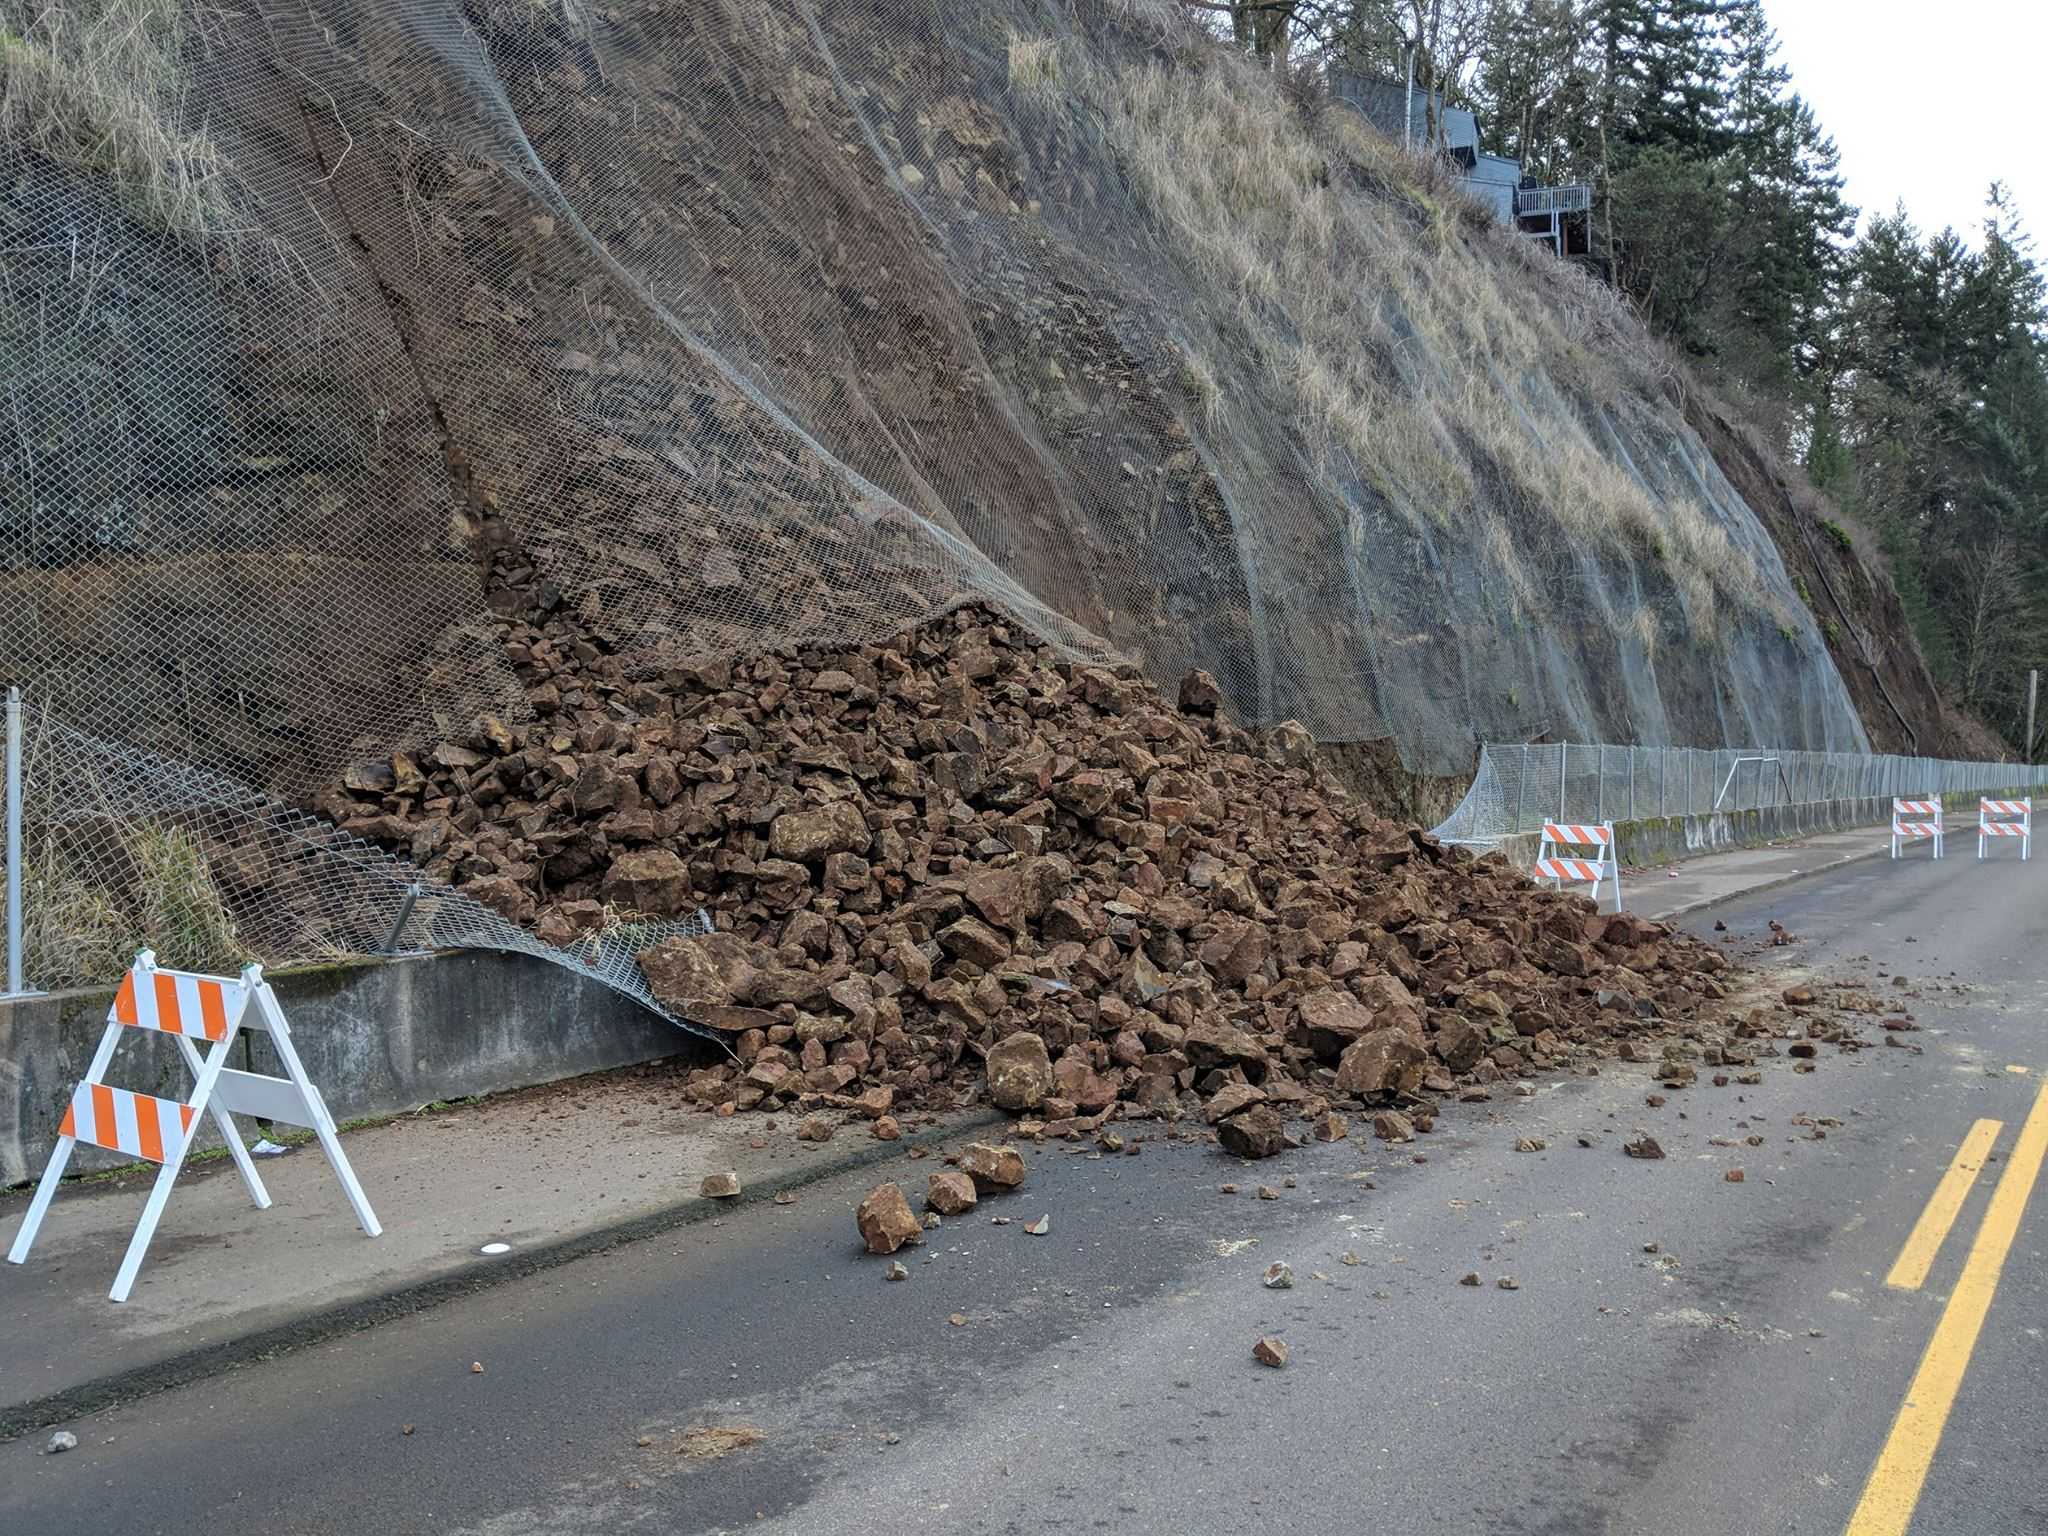 Rock slide on River Road South - Photos from the City of Salem